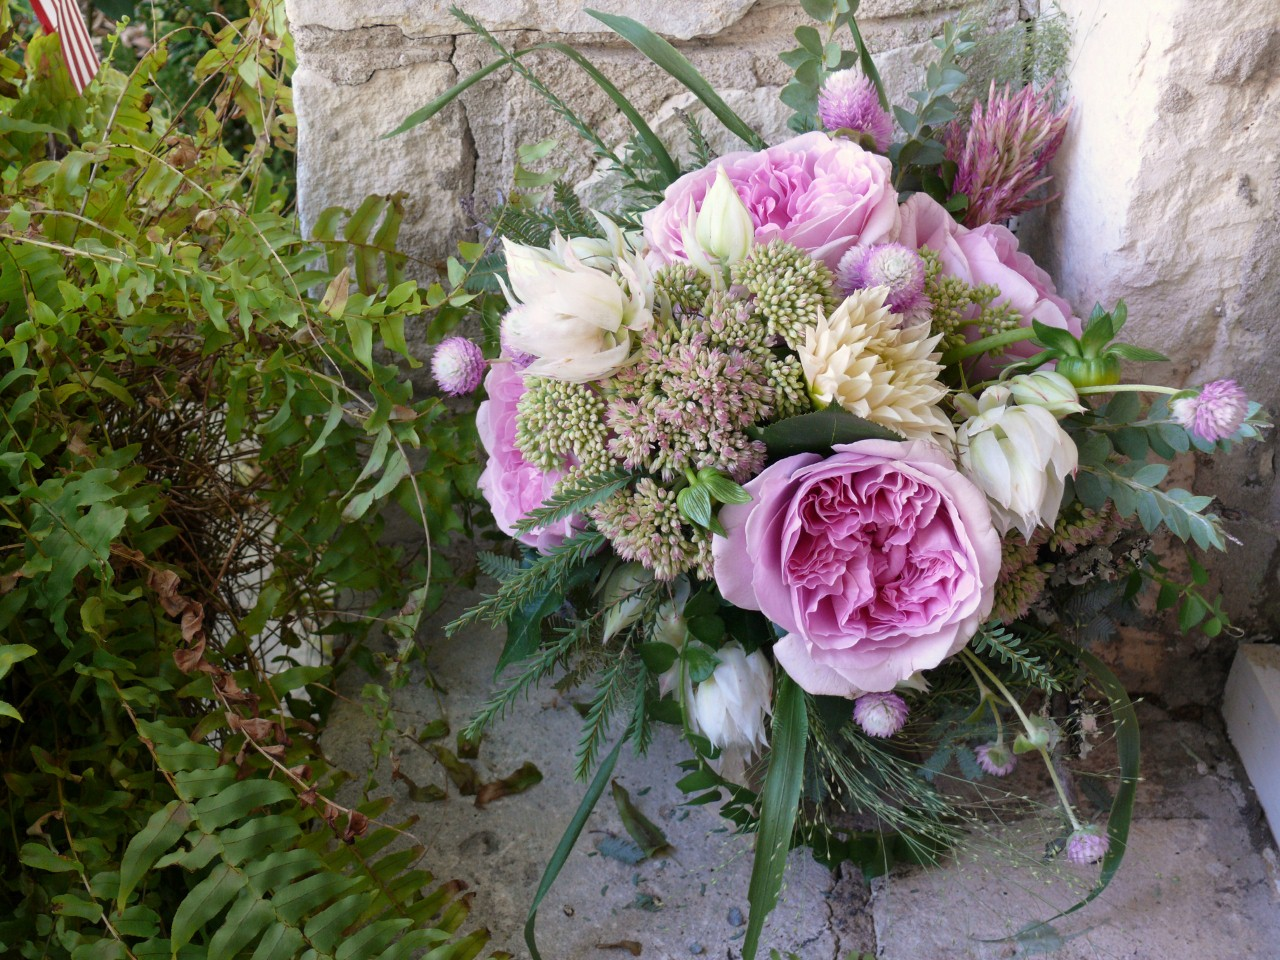 La fleur vintage woodland garden rose bridal bouquet - Garden rose bouquet ...